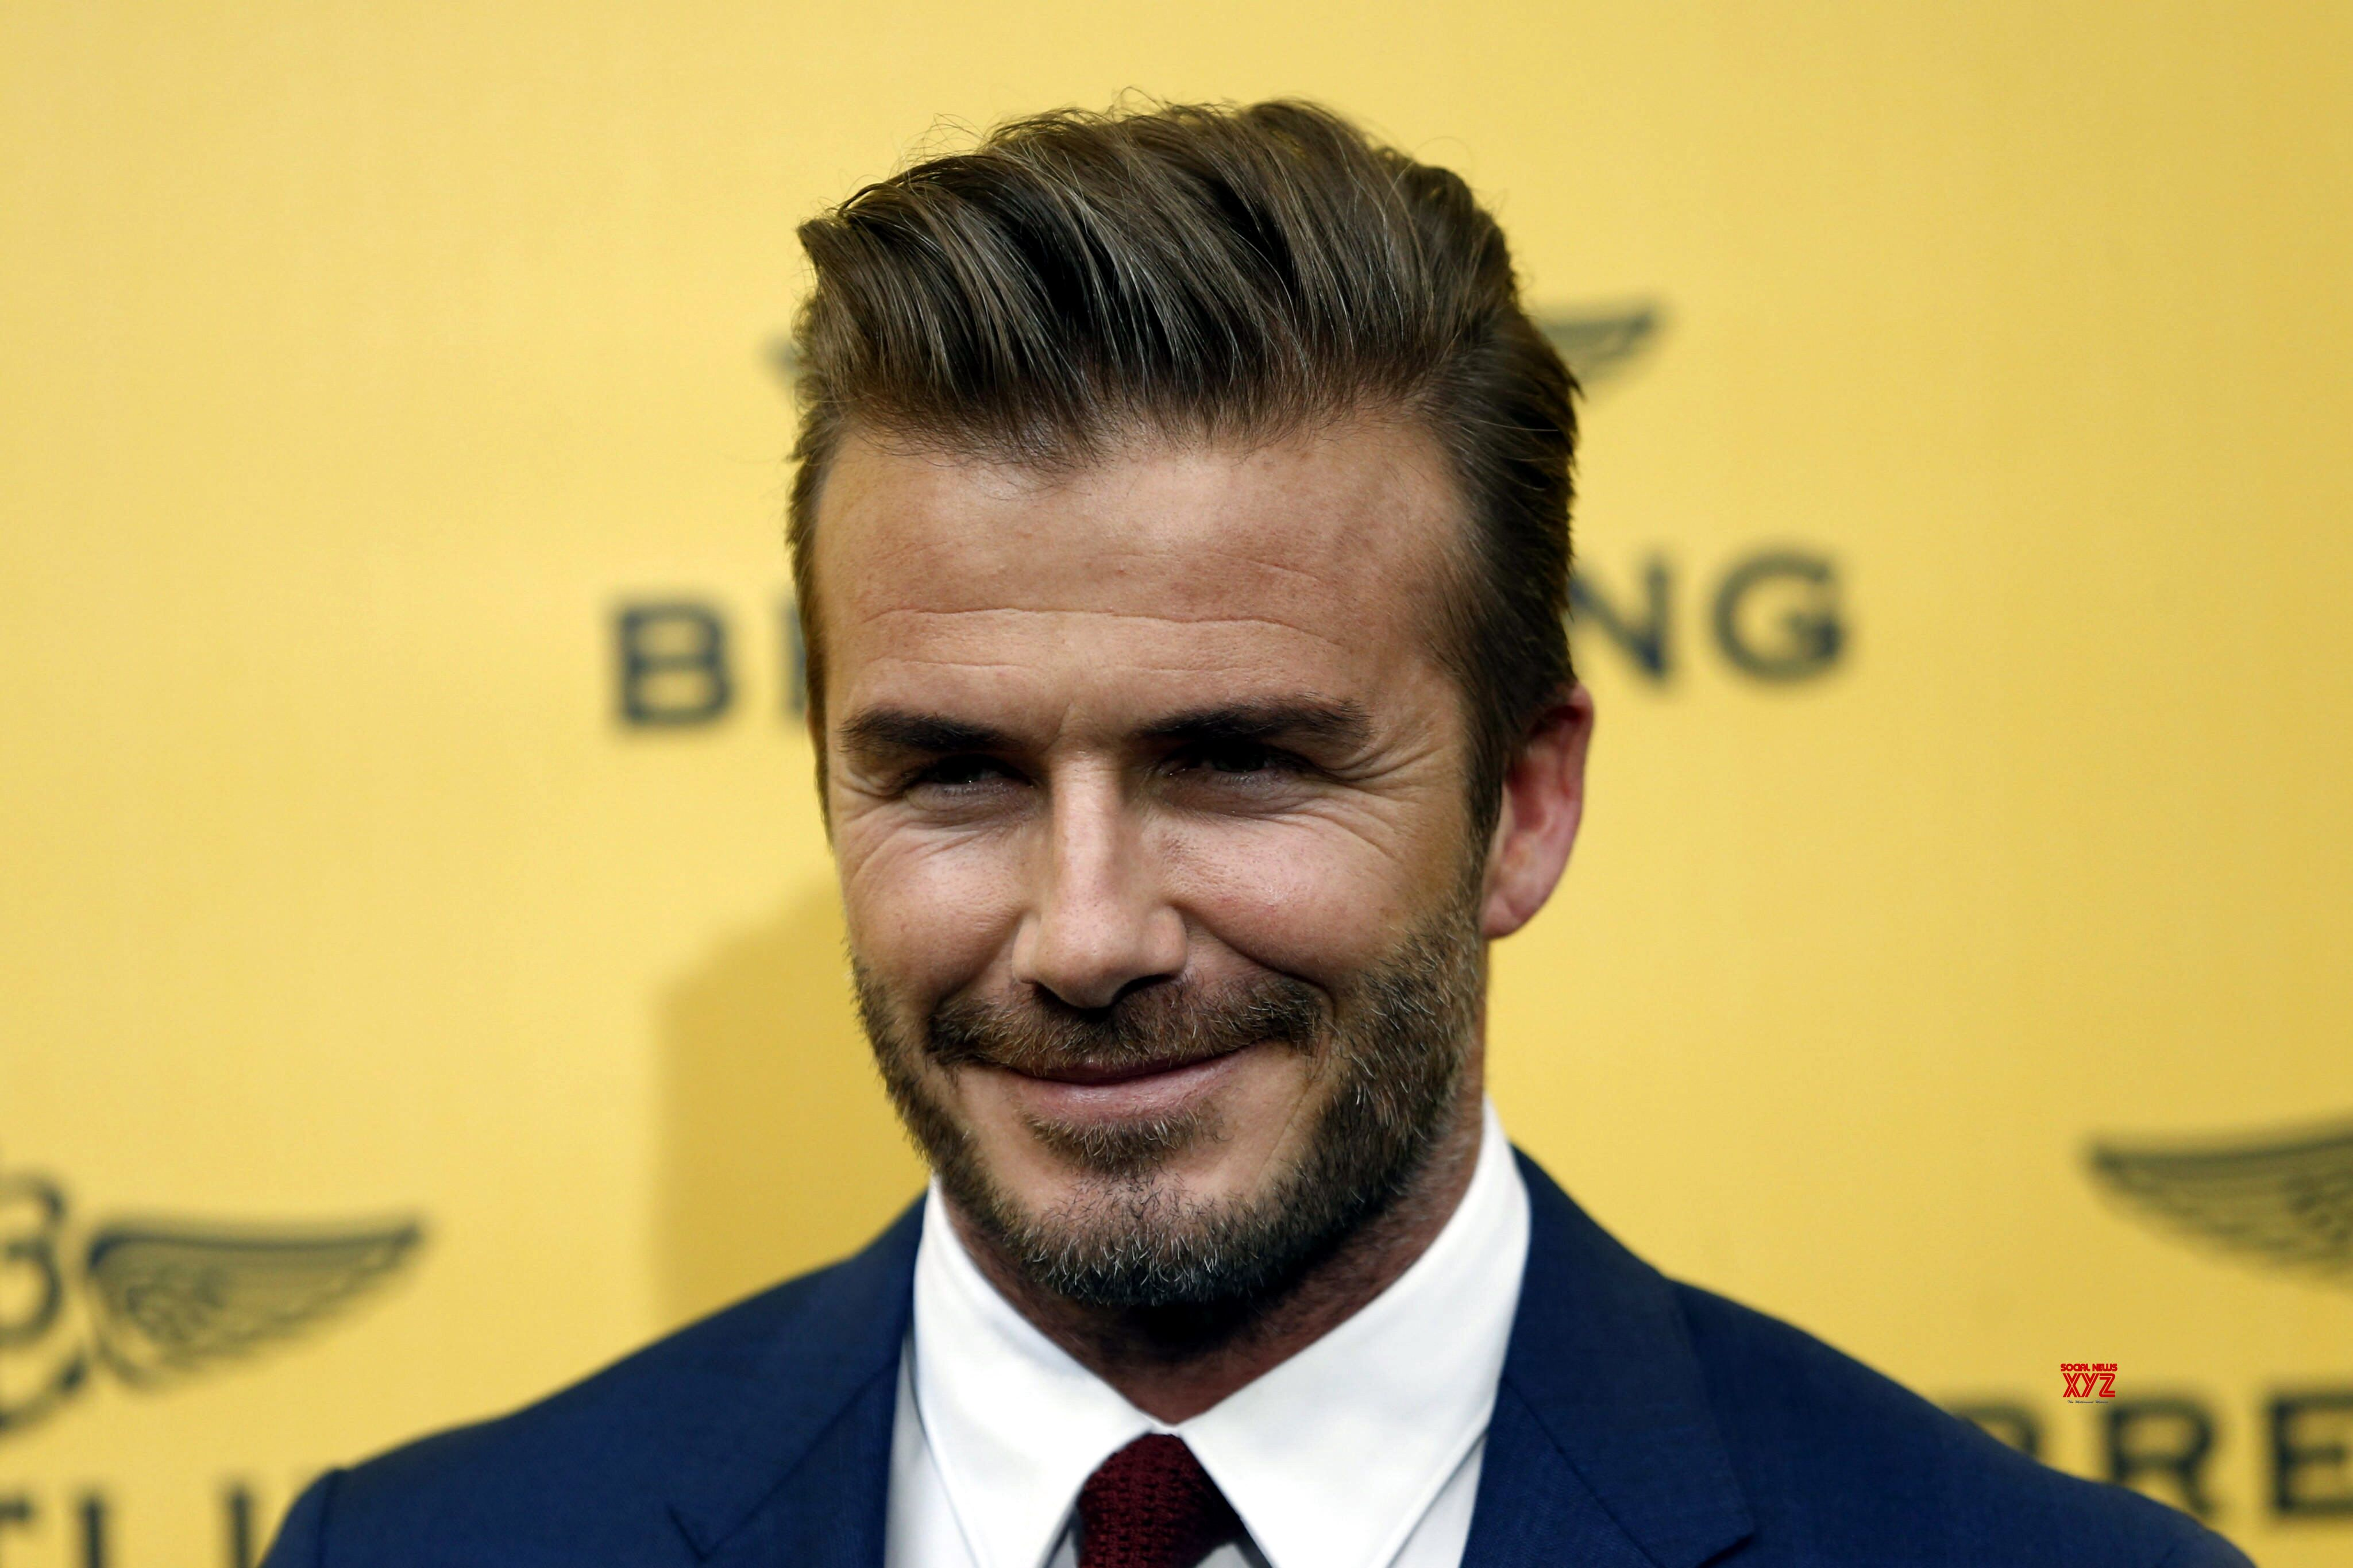 Beckham thanks 'brave' healthcare workers in COVID-19 fight